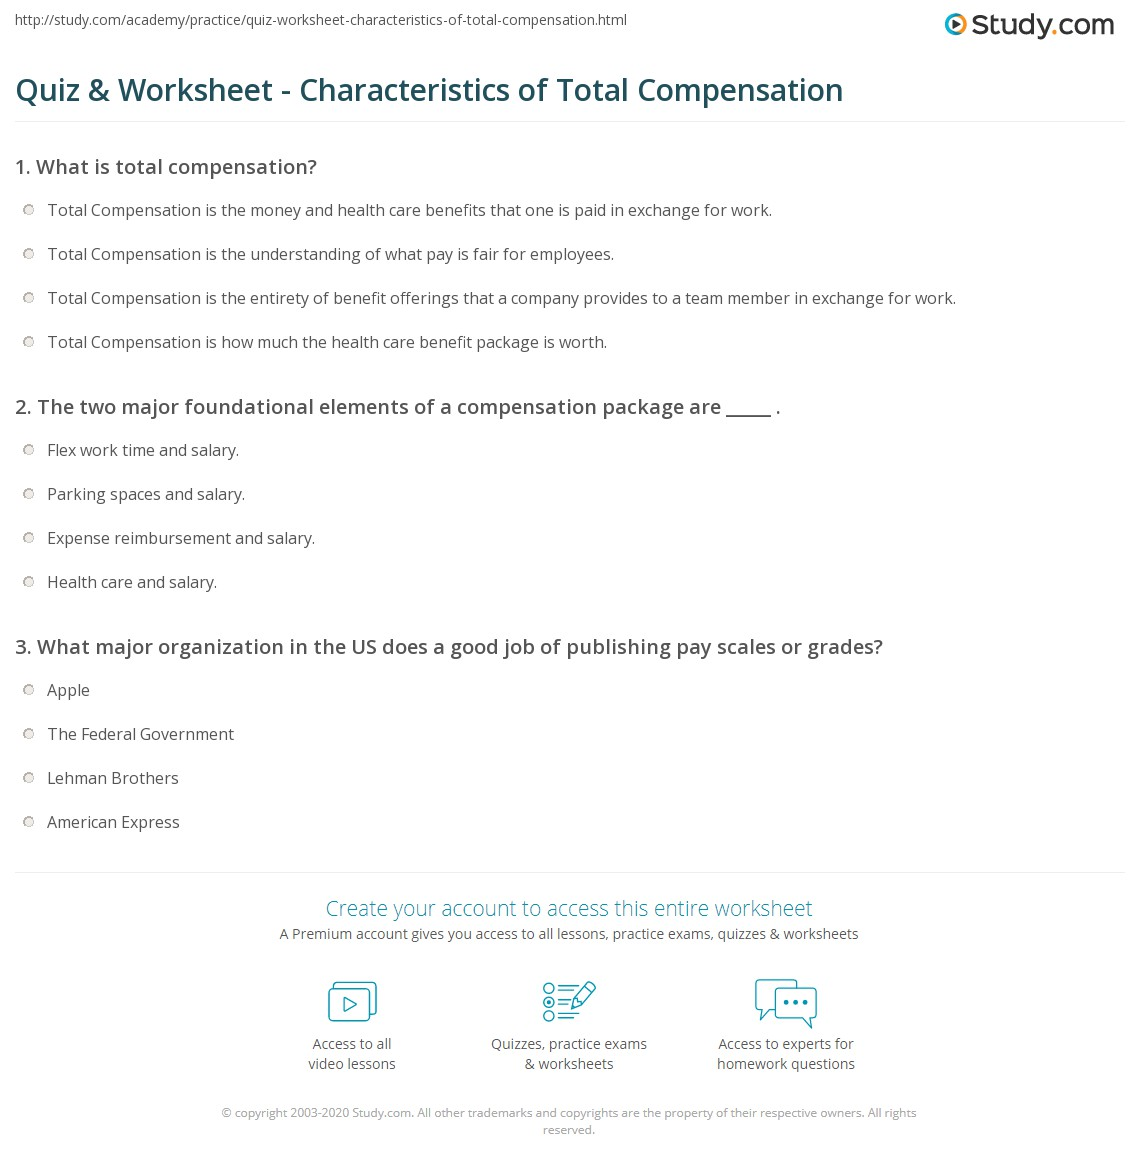 quiz worksheet characteristics of total compensation com the two major foundational elements of a compensation package are